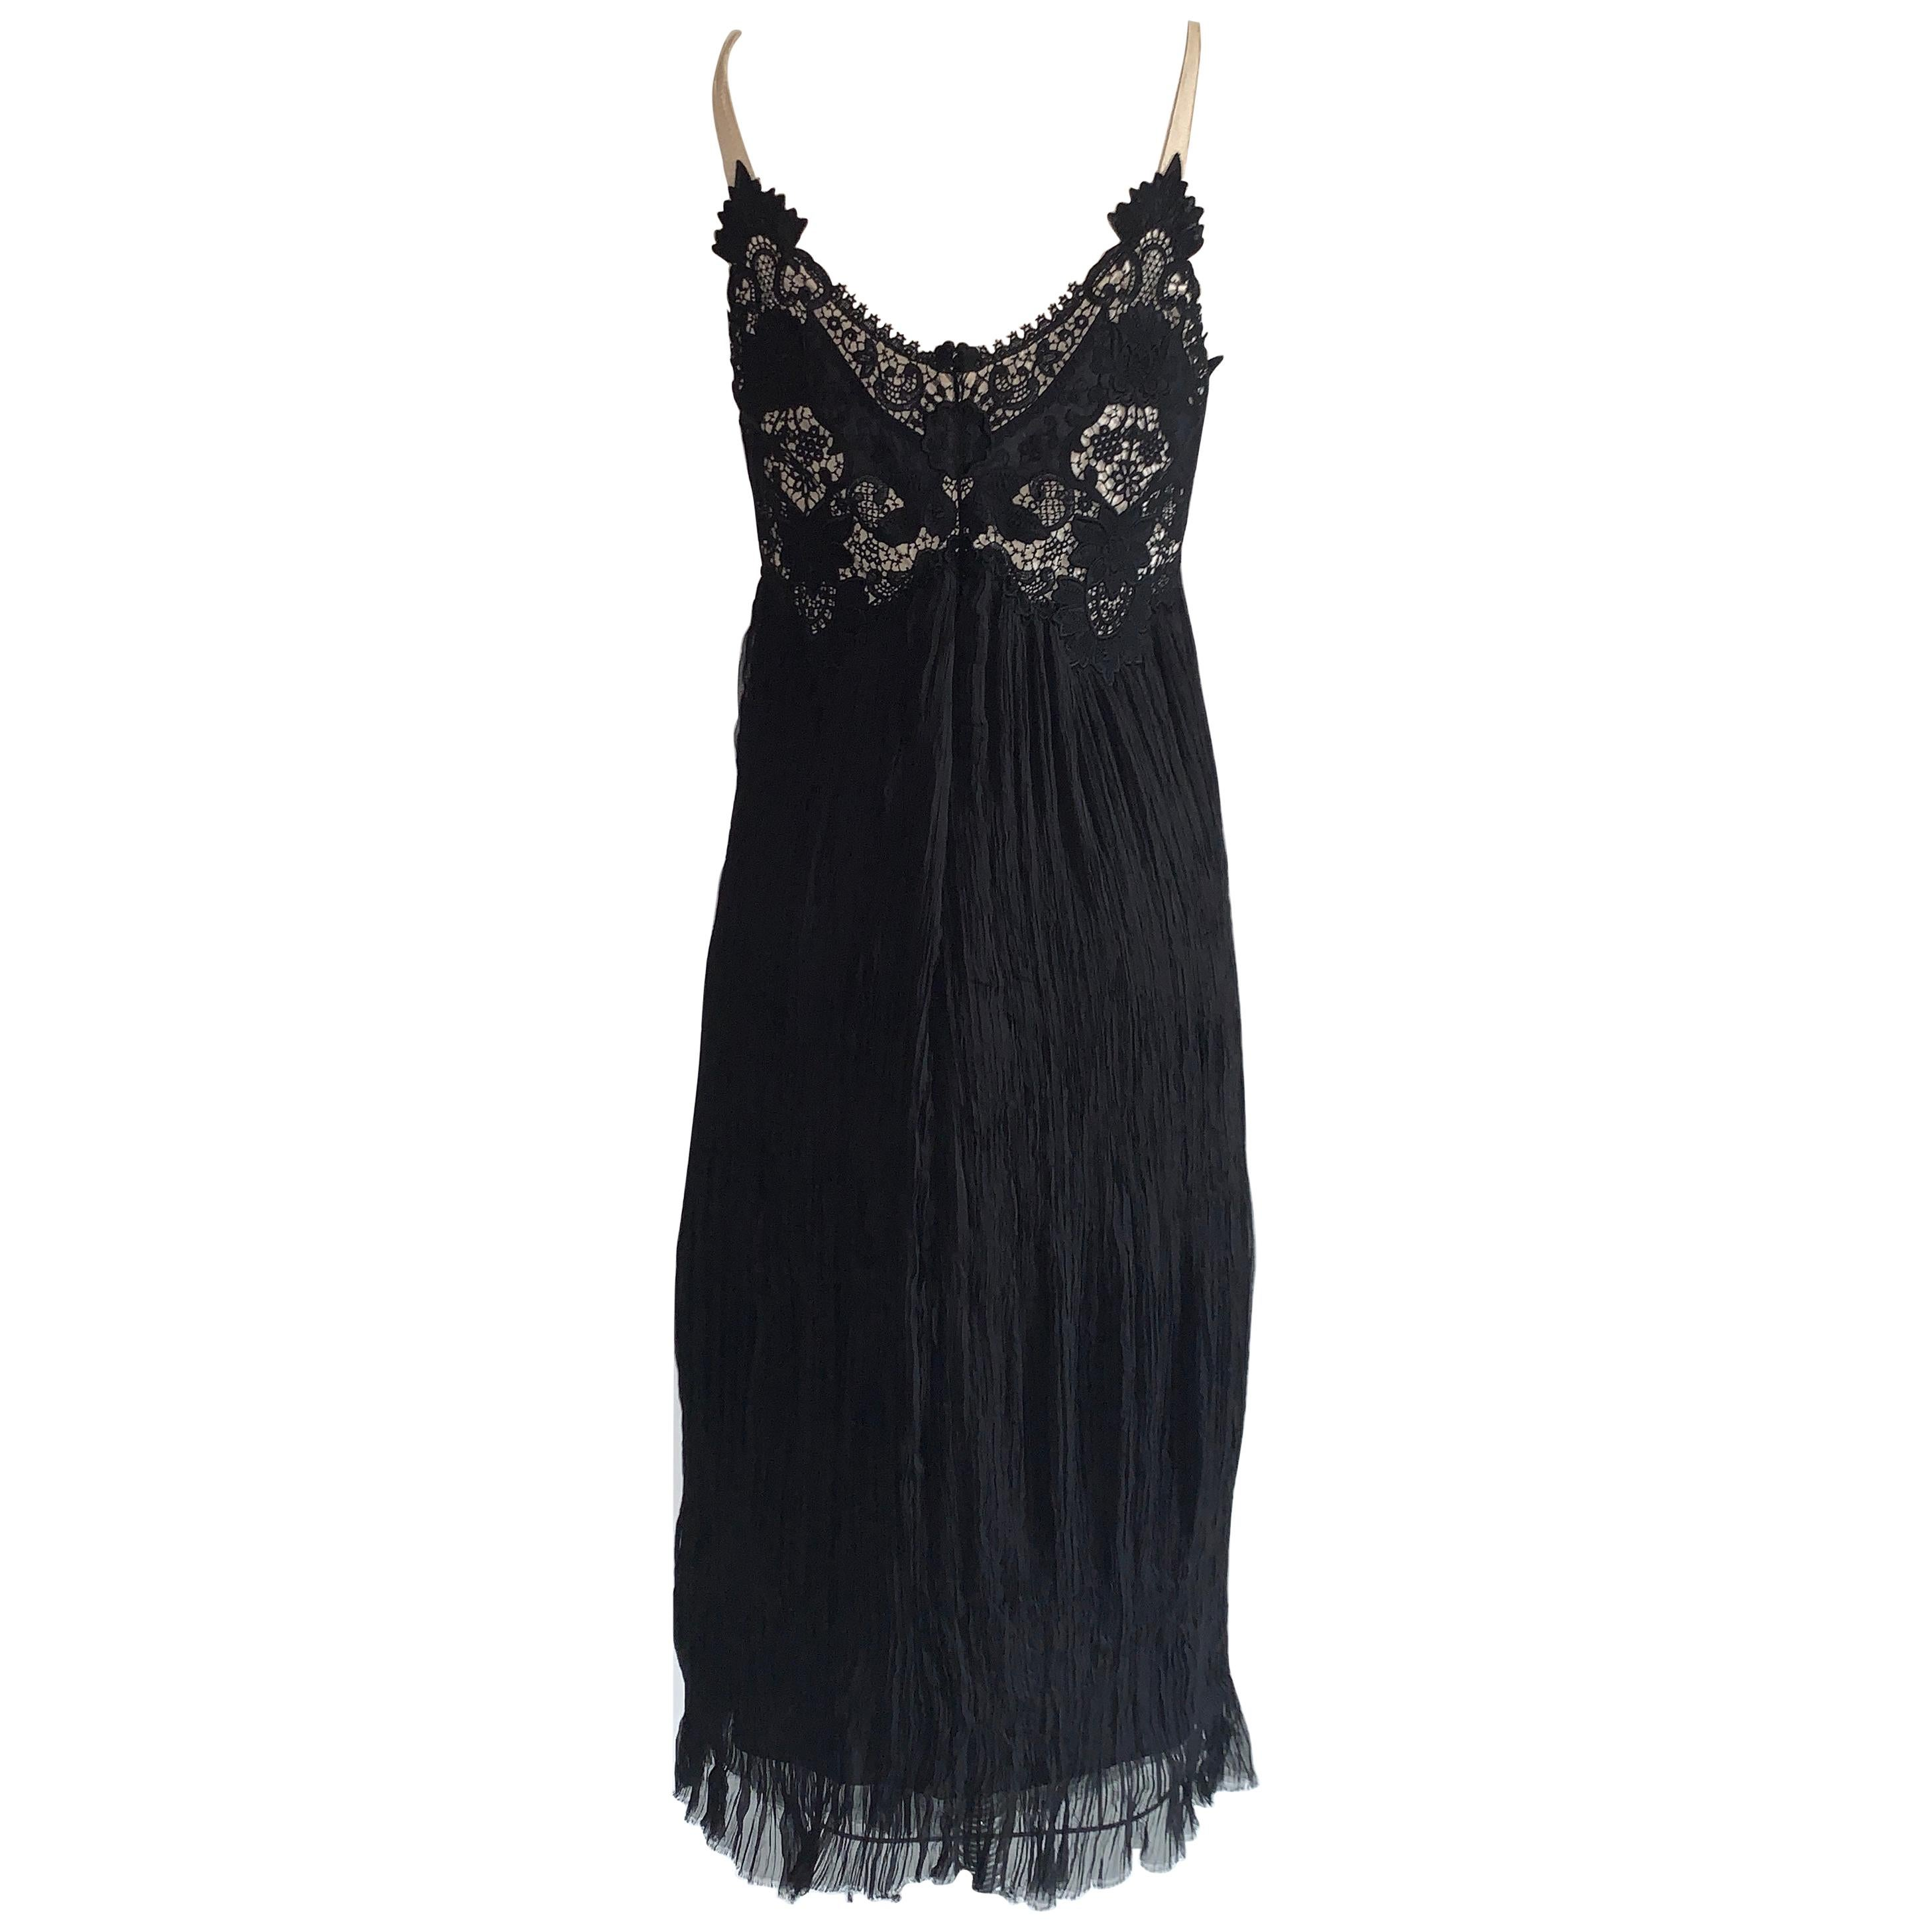 Alexander McQueen 2005 Black Lace and Crinkle Pleat Silk Dress